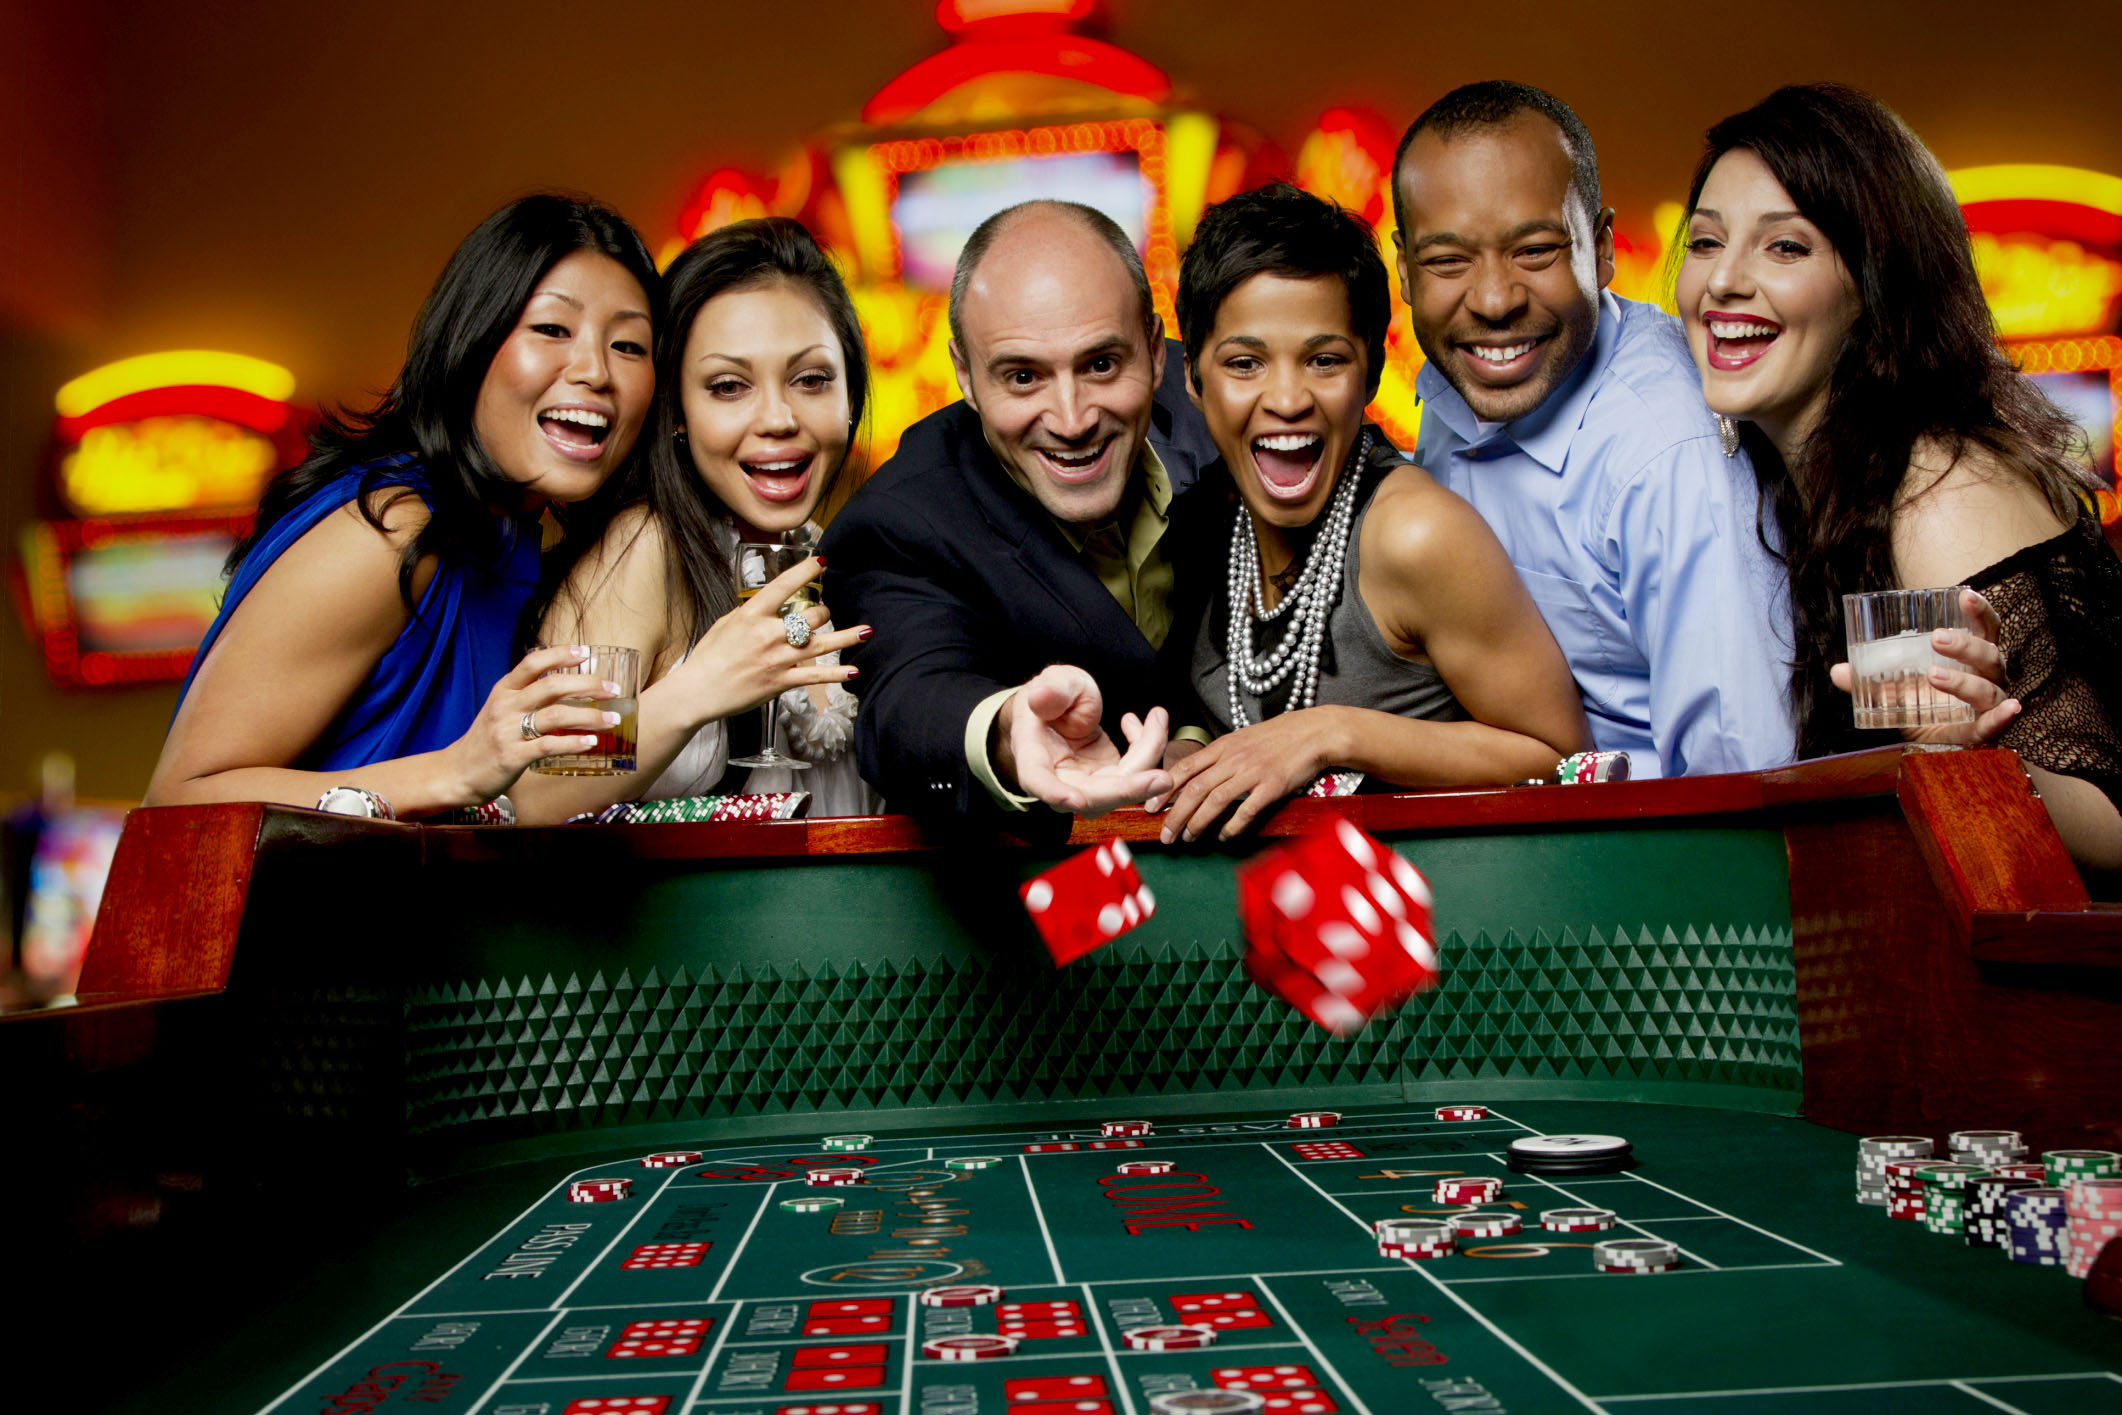 Grade 12 Youth For Casino Gaming Operations Learnership for 2015